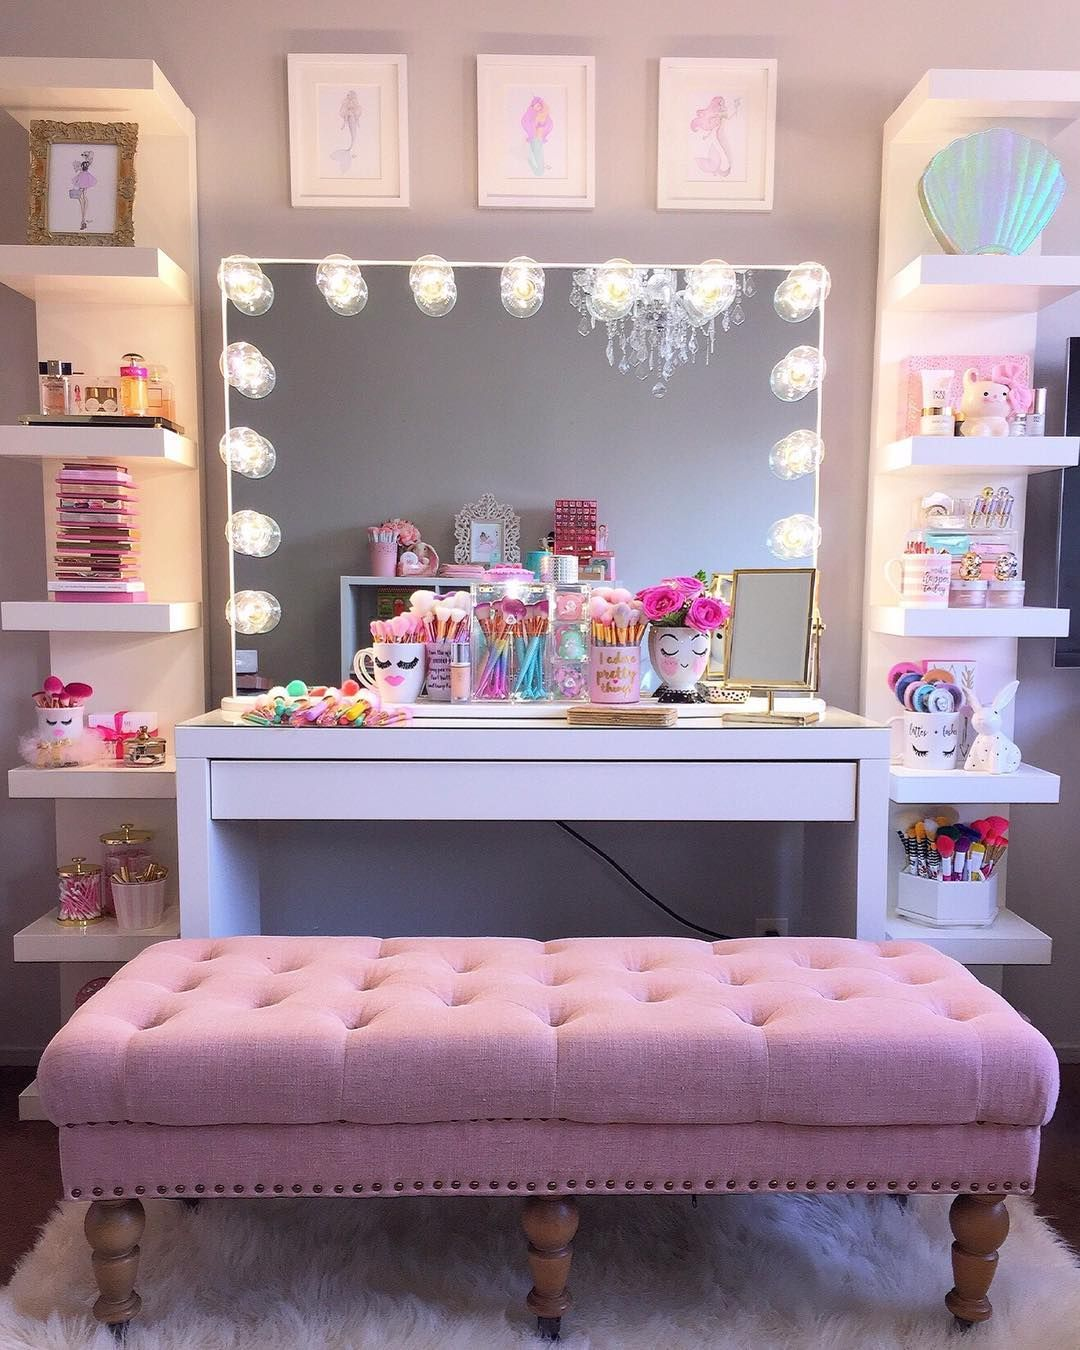 makeup room ideas  Makeup (make up stations) Tags  Makeup room DIY, makeup  room ideas, makeup room small, dream makeup room 36ddce1a838